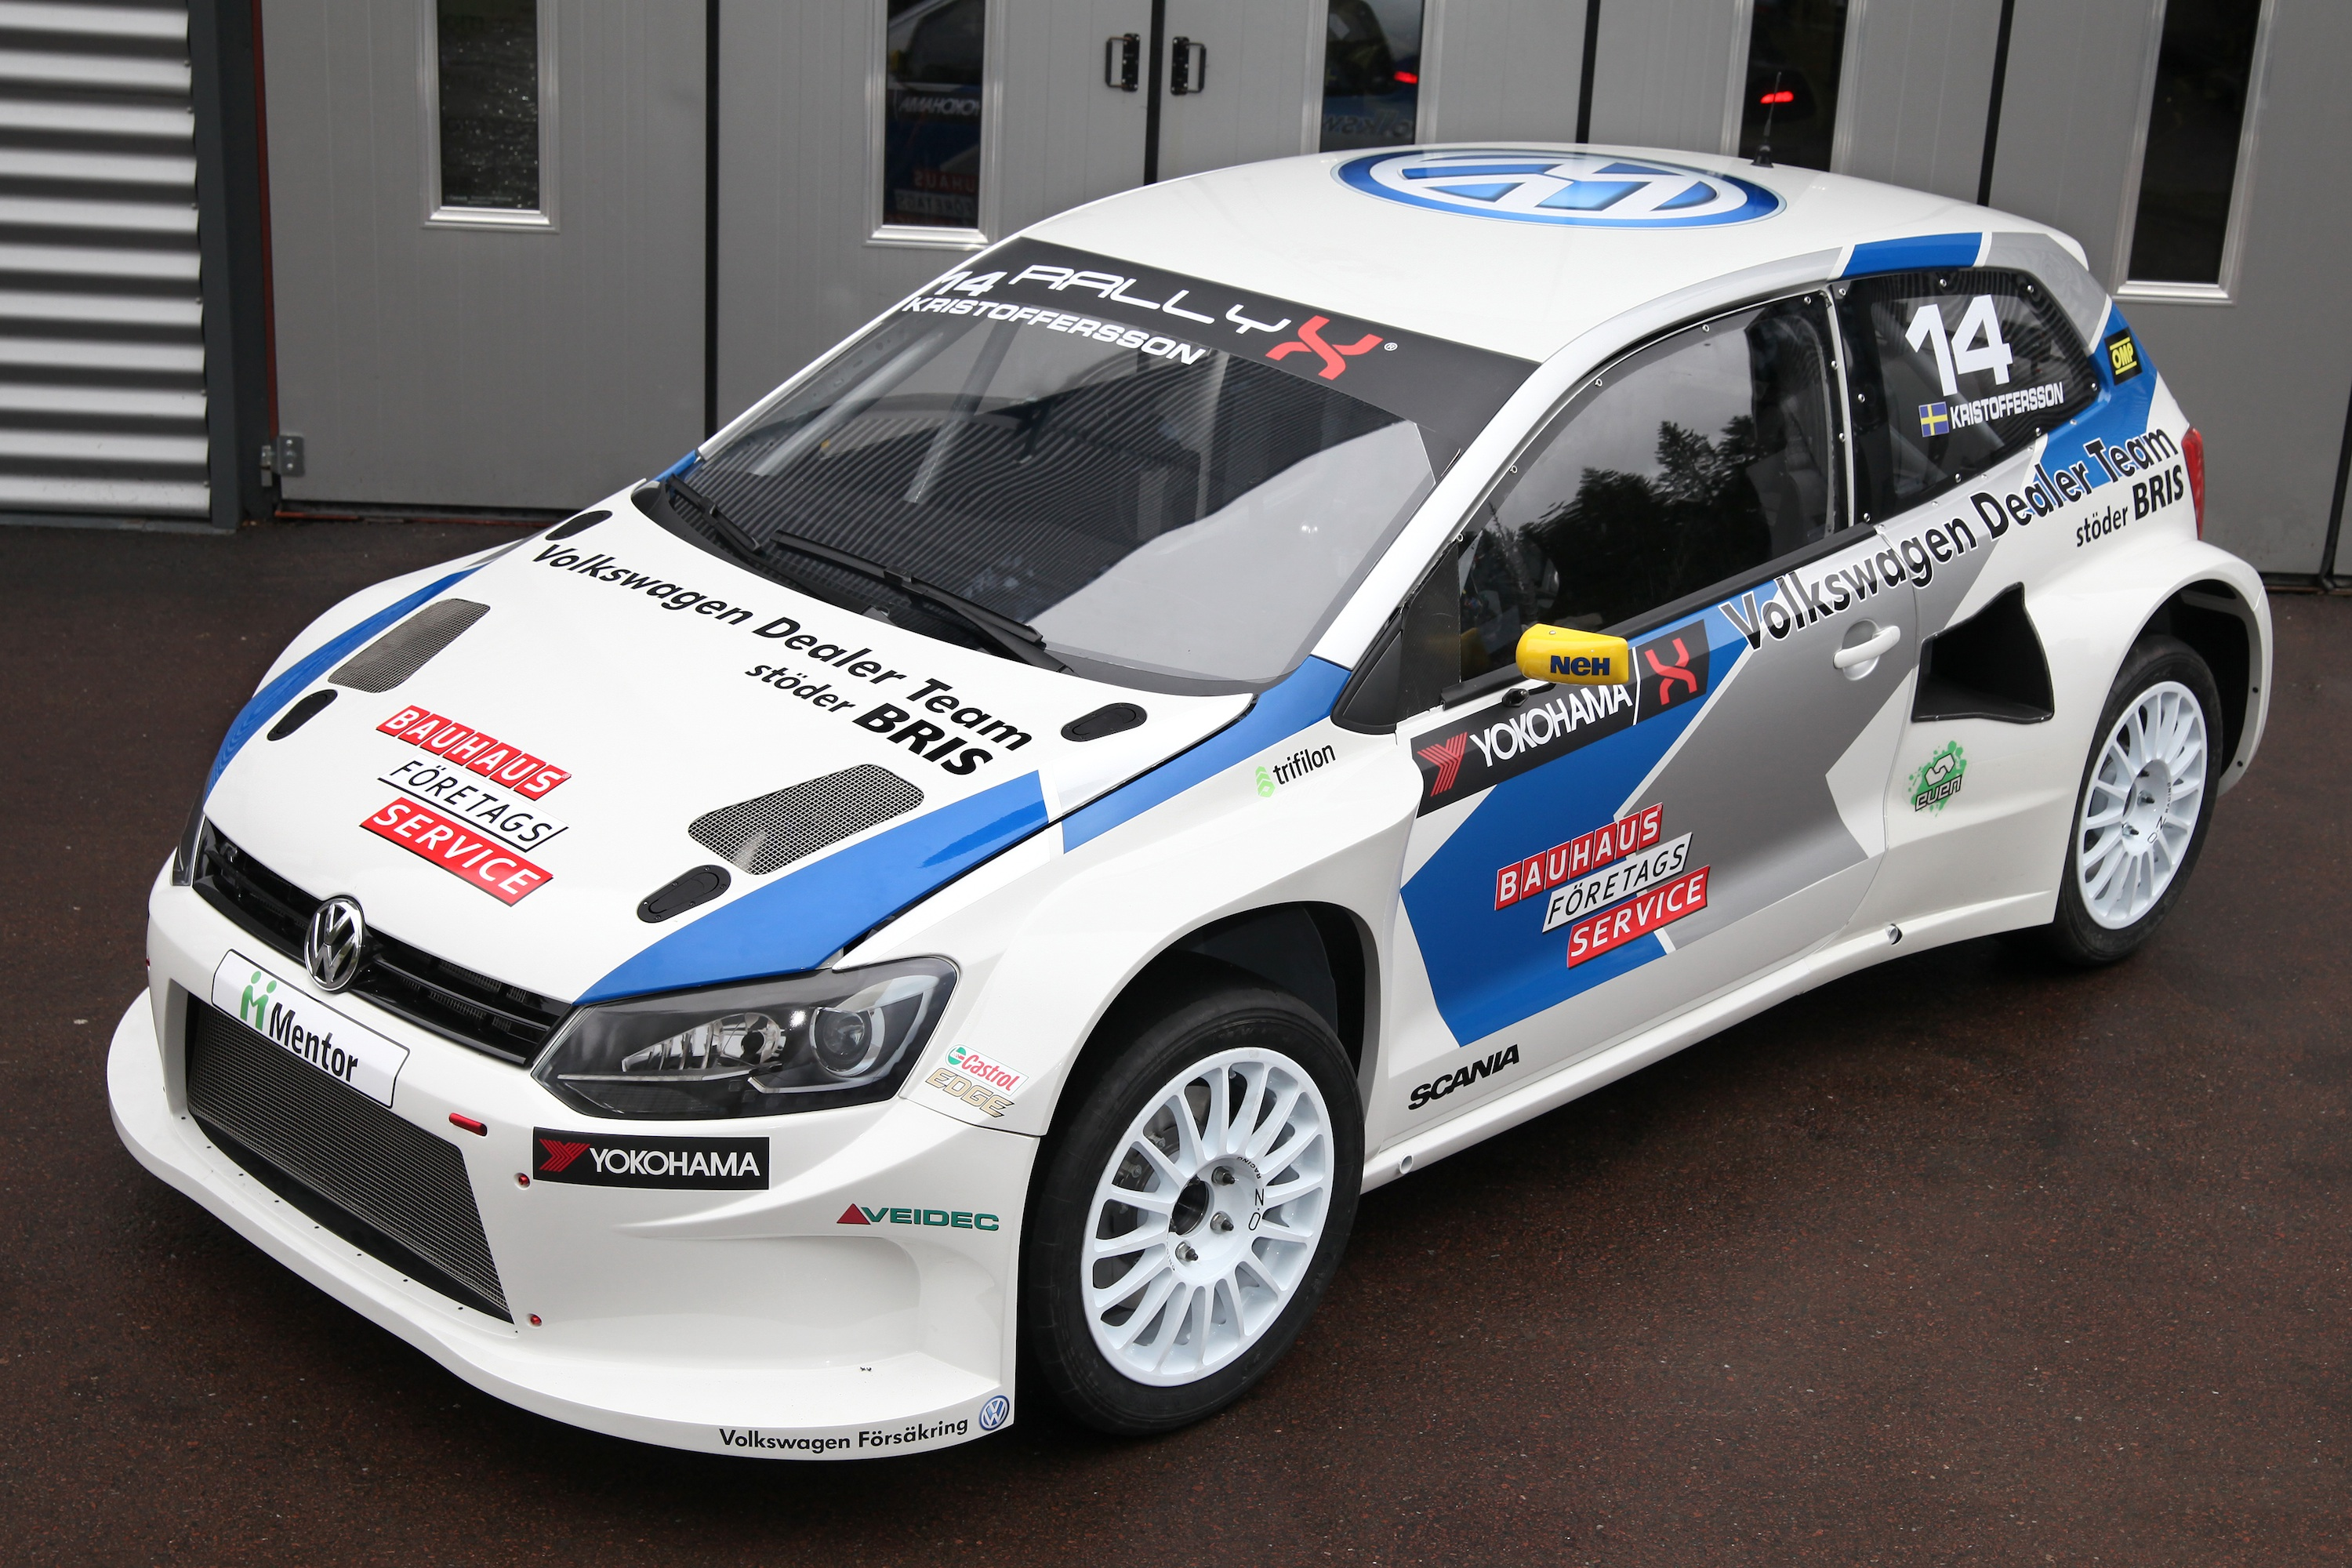 Vw Polo Rally Car For Sale